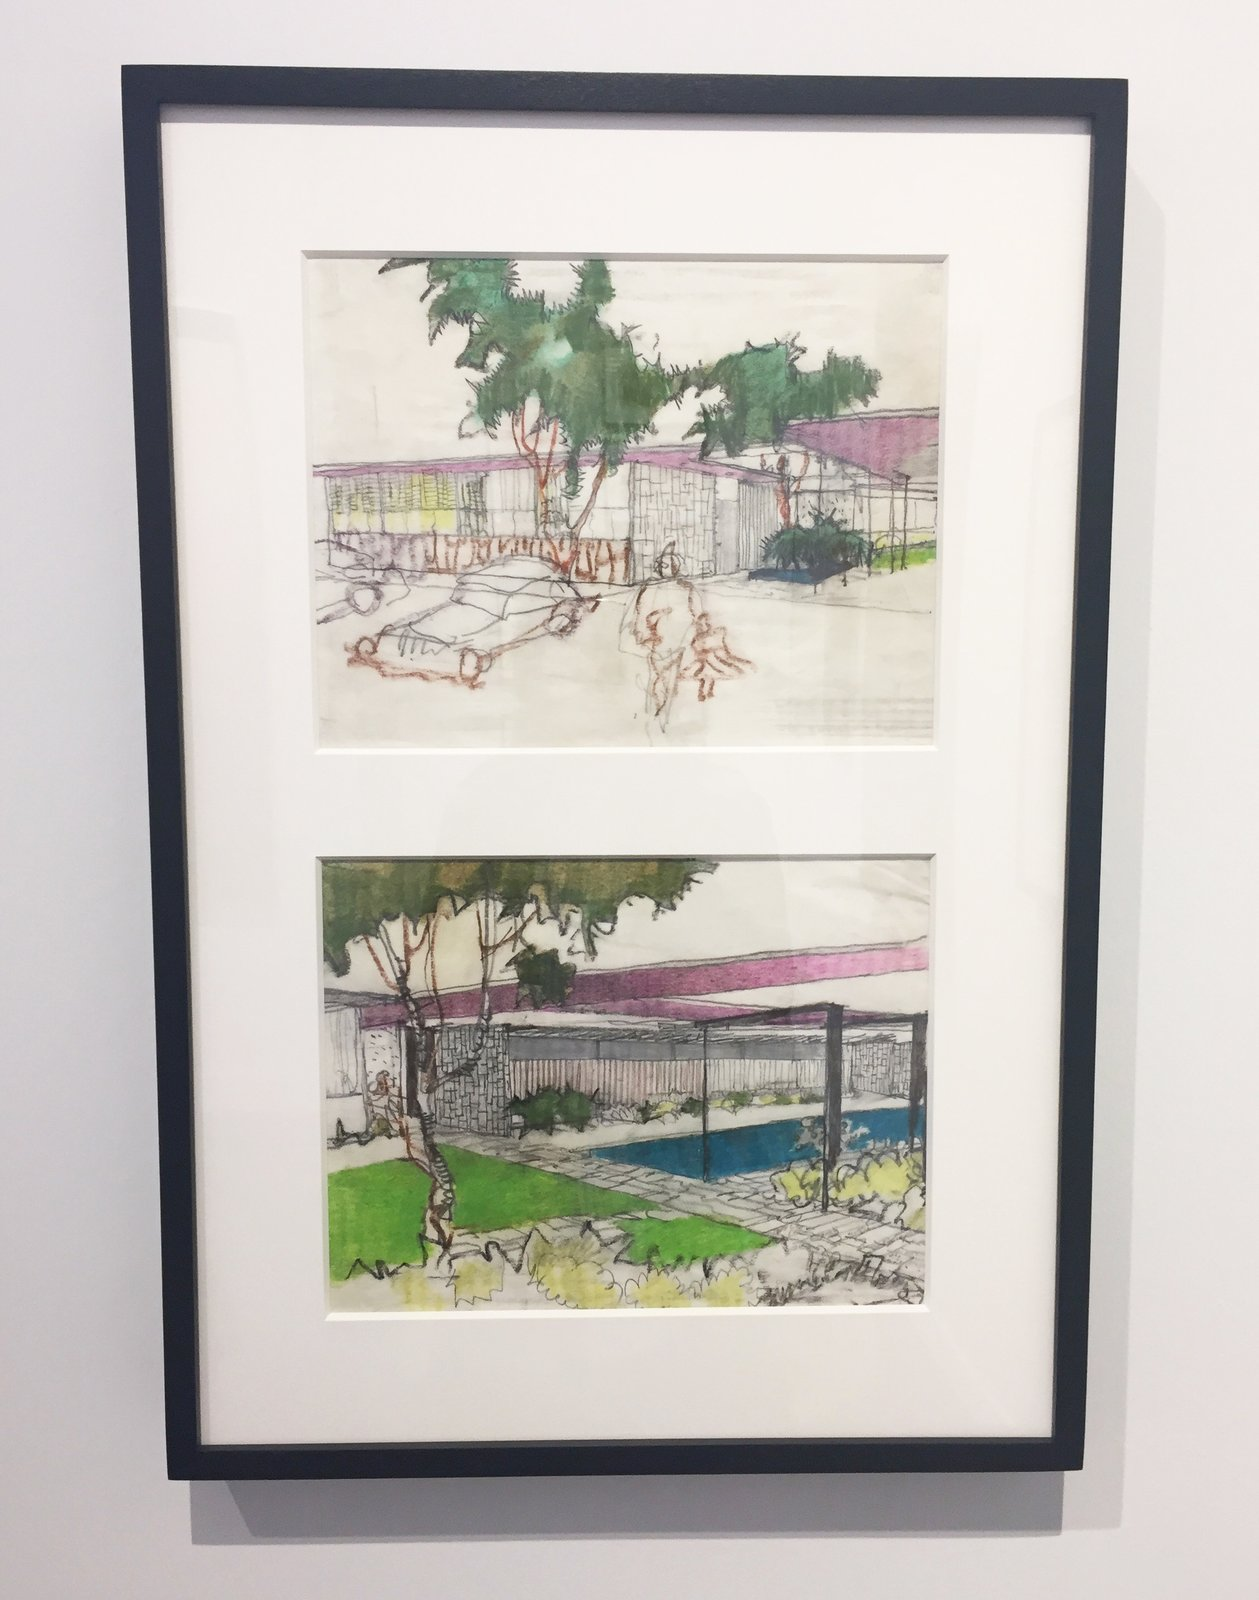 Edward Cella Art & Architecture from Los Angeles deals a collection of architectural illustrations by iconic architect Richard Neutra. Shown here is a pair of 1963 elevation drawings down with pastel on paper. It shows the Mariners Medical Art Center in Newport, California.